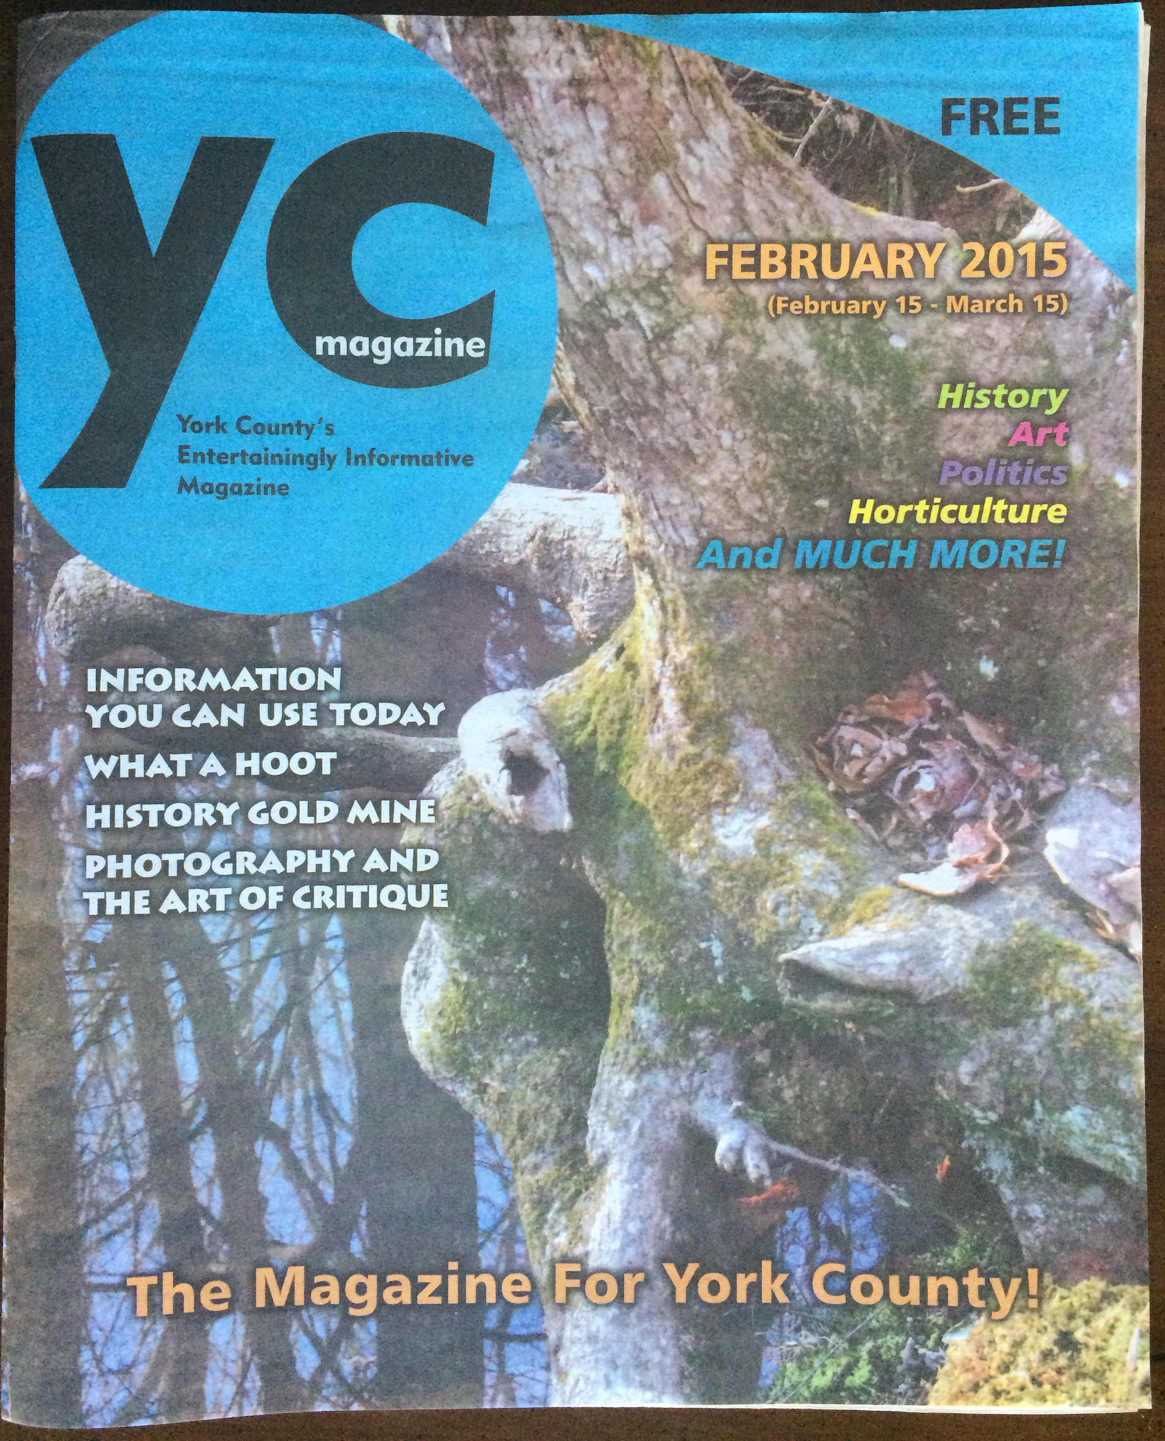 YC Magazine FEB 2015 Cover